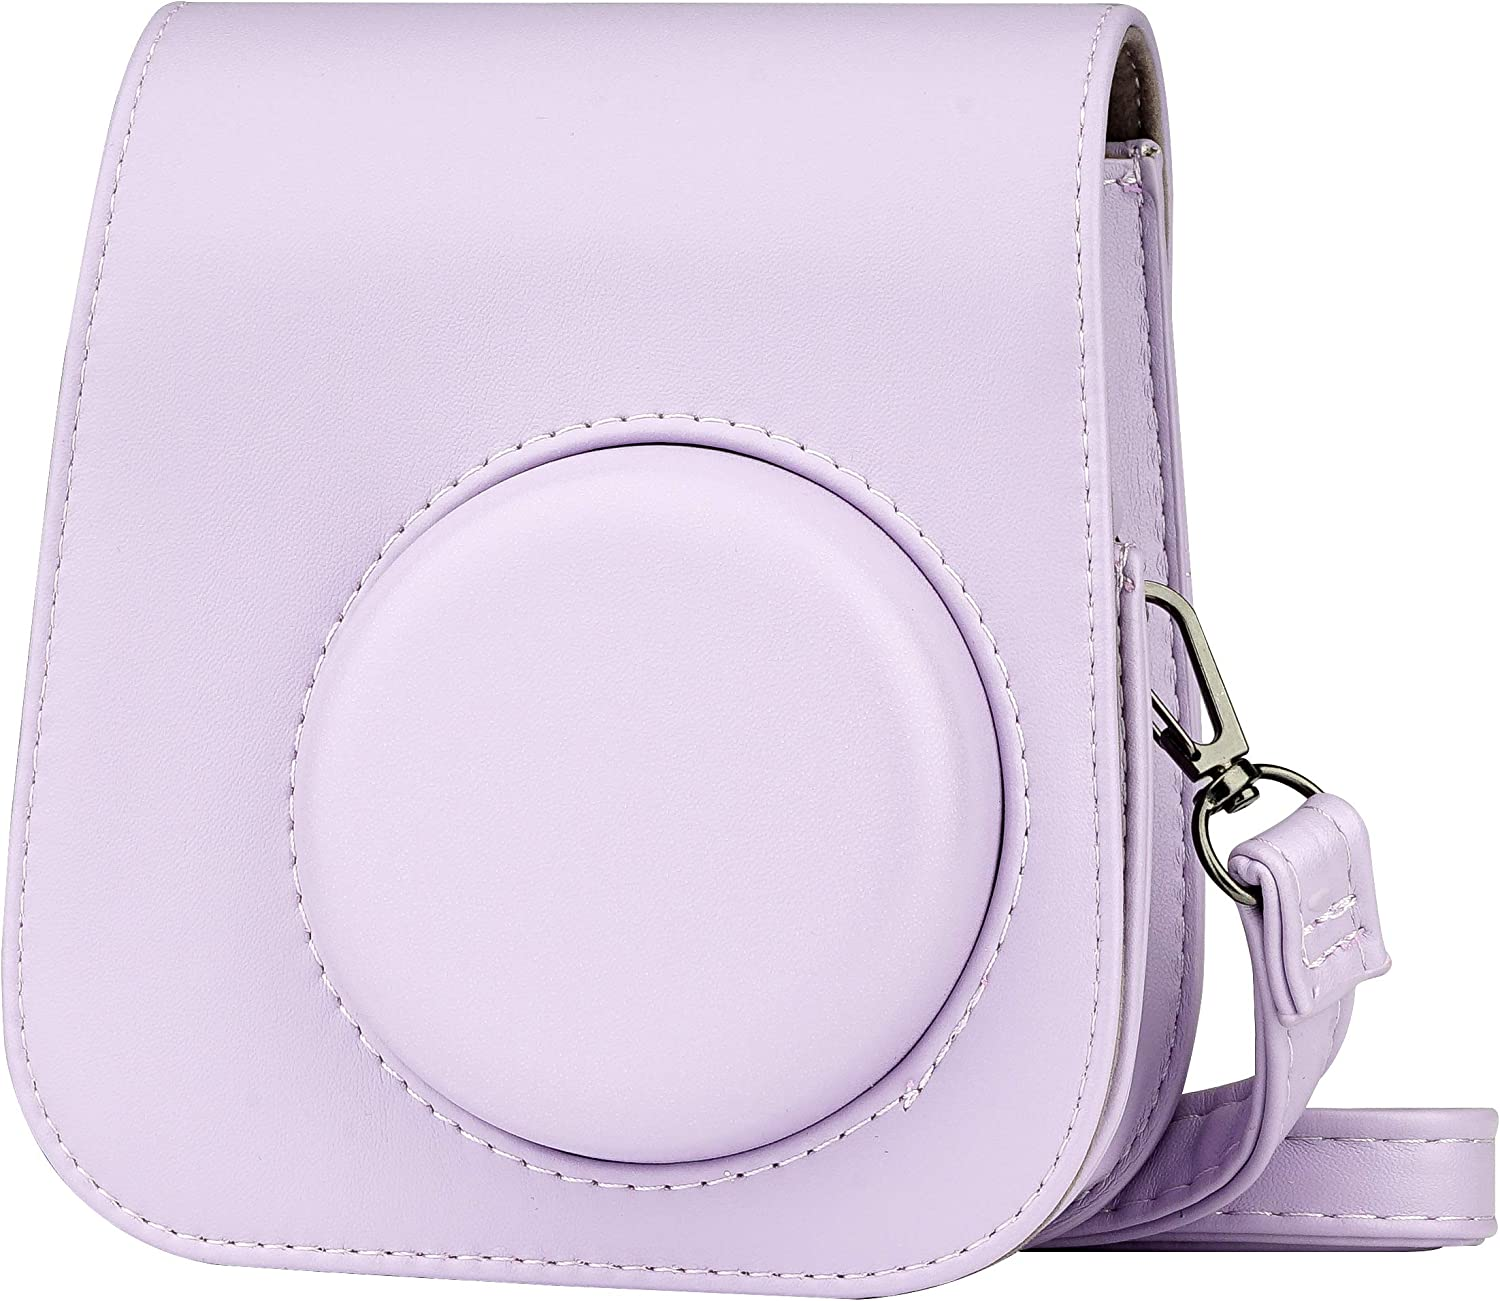 Blummy PU Leather Camera Case for Fujifilm Instax Mini 11 Instant Camera with Adjustable Strap and Pocket(Purple)